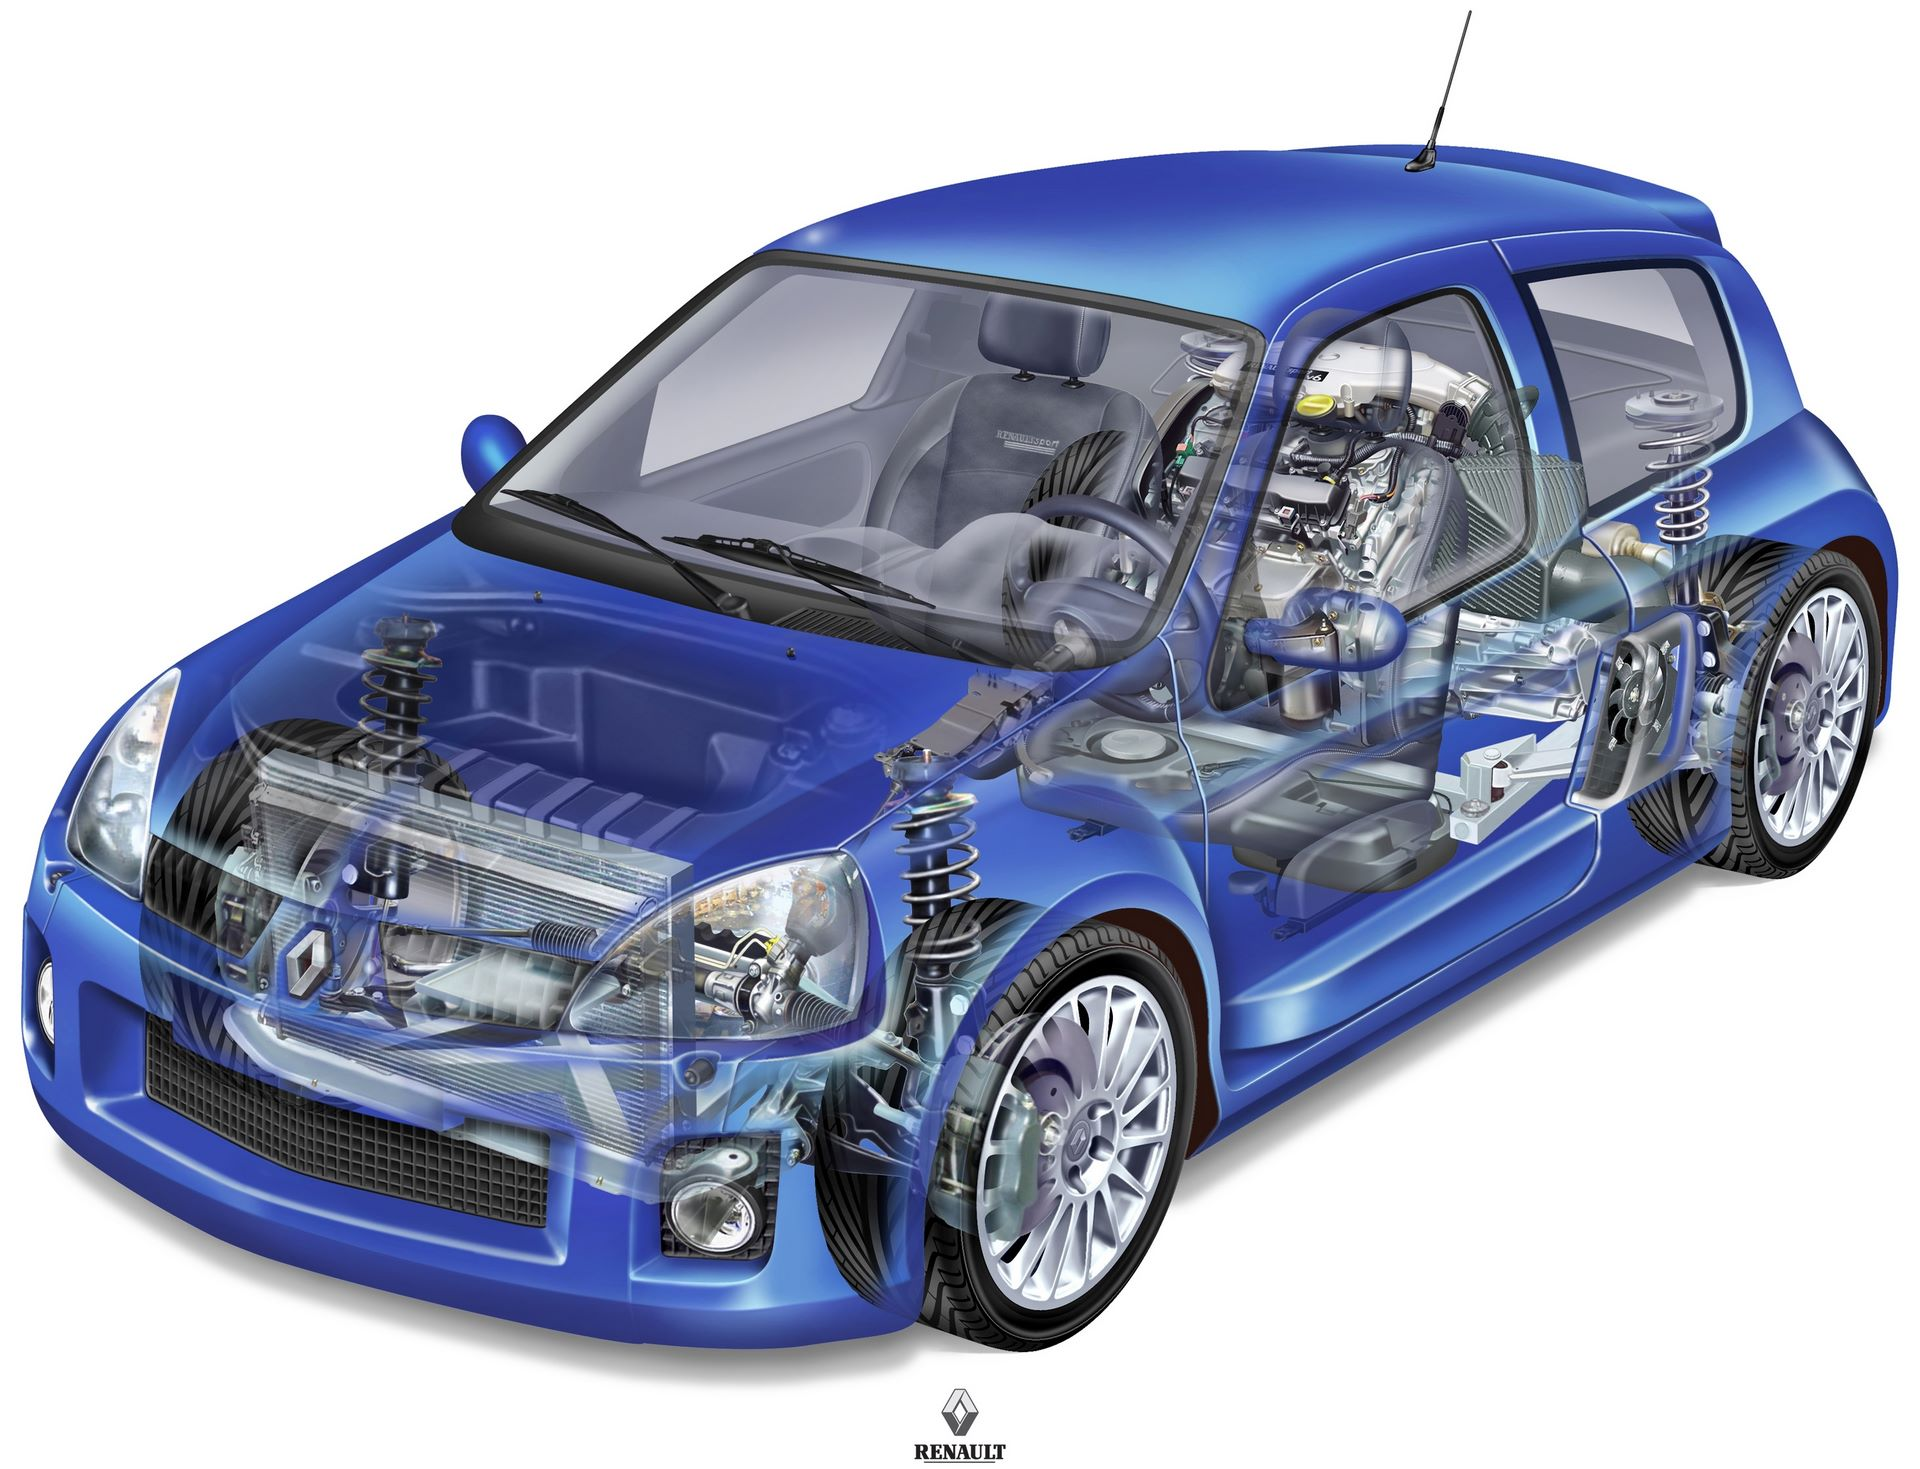 NEW CLIO V6 3.0 24V TECHNICAL DRAWINGS